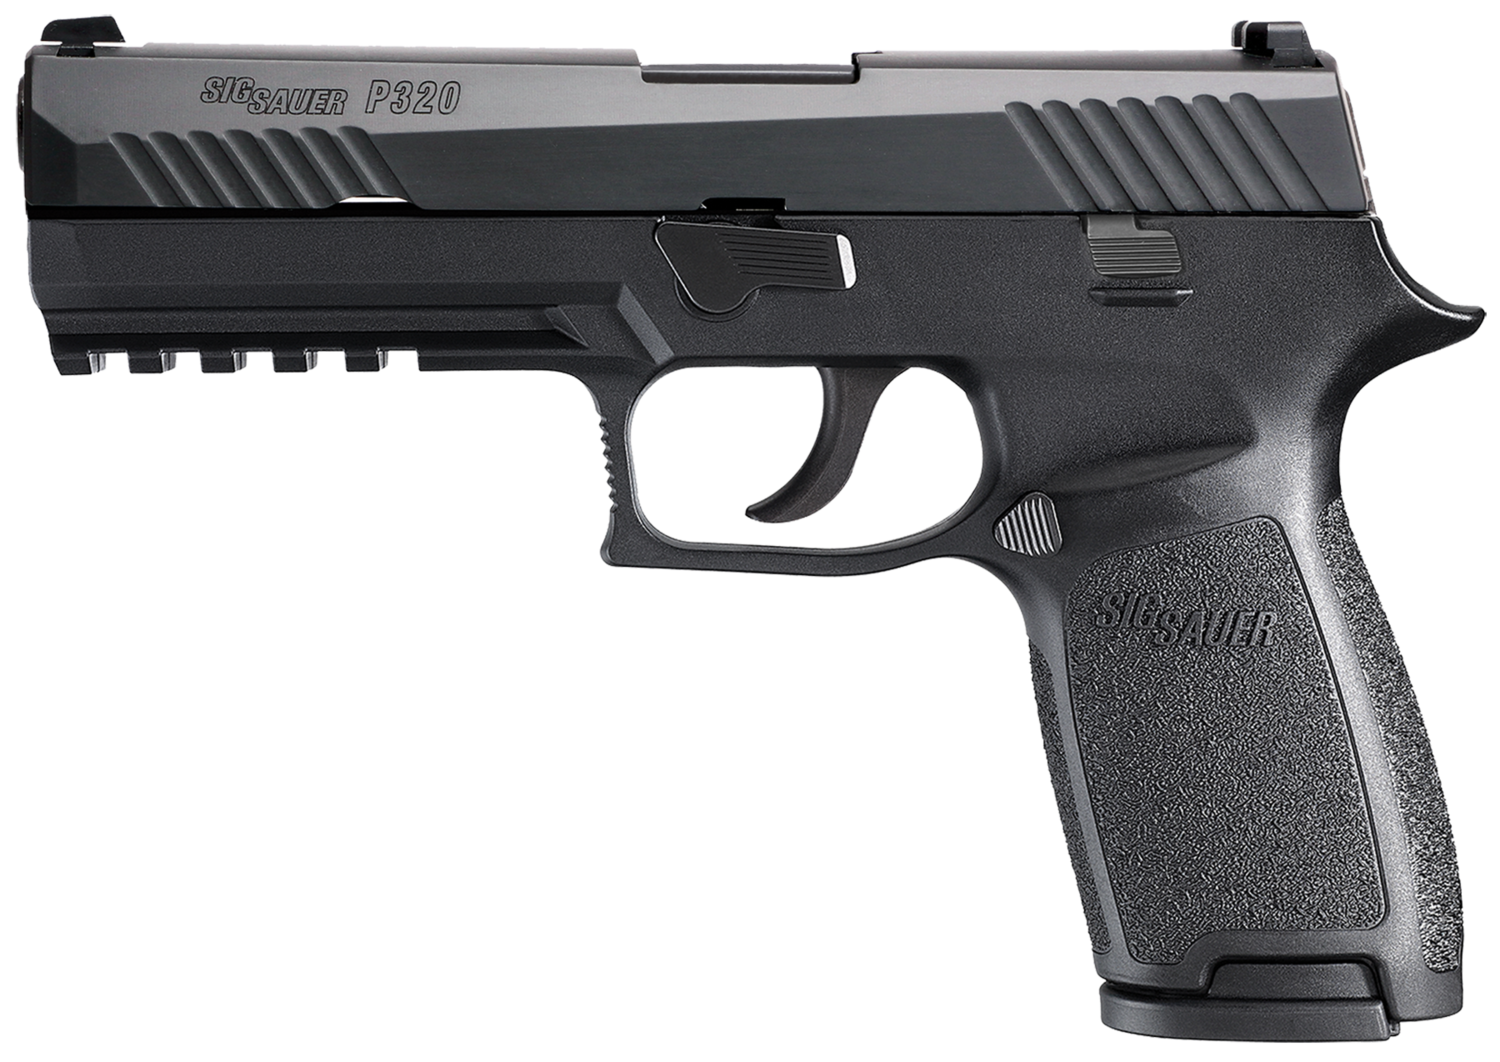 """80% Sig Sauer - P320 Full Size Double 40 Smith & Wesson (S&W) 4.7"""" 14+1 - 2 Mags - Black Polymer Grip - Nitron Stainless Steel"""